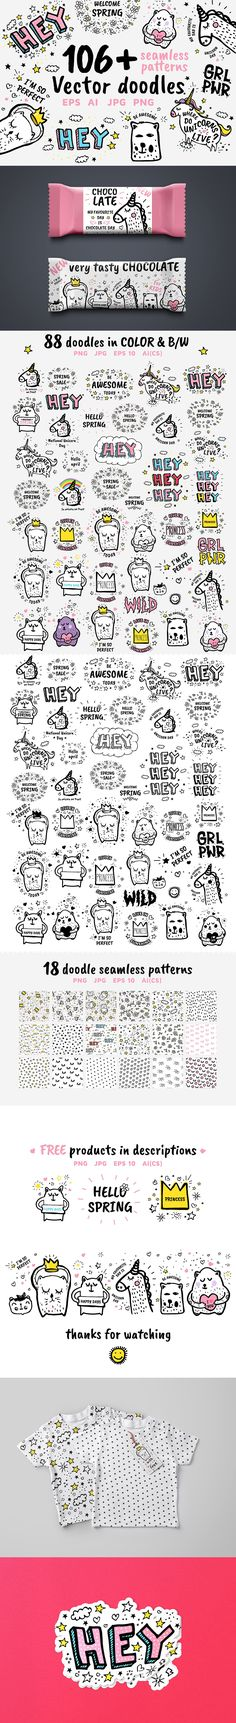 106+ vector doodles, patterns + #FREE by softulka on @creativemarket Editable with #Illustrator CS and newer, Corel Draw, #Photoshop Big set of #Vector cute #doodles #illustrations with text and #graphic #design elements, fancy fantasy animals. Trendy characters collections. This funny #clipart and #patterns is perfect for graphic design, cards, posters, #prints, #apparel, #packaging, #tshirts design and more!